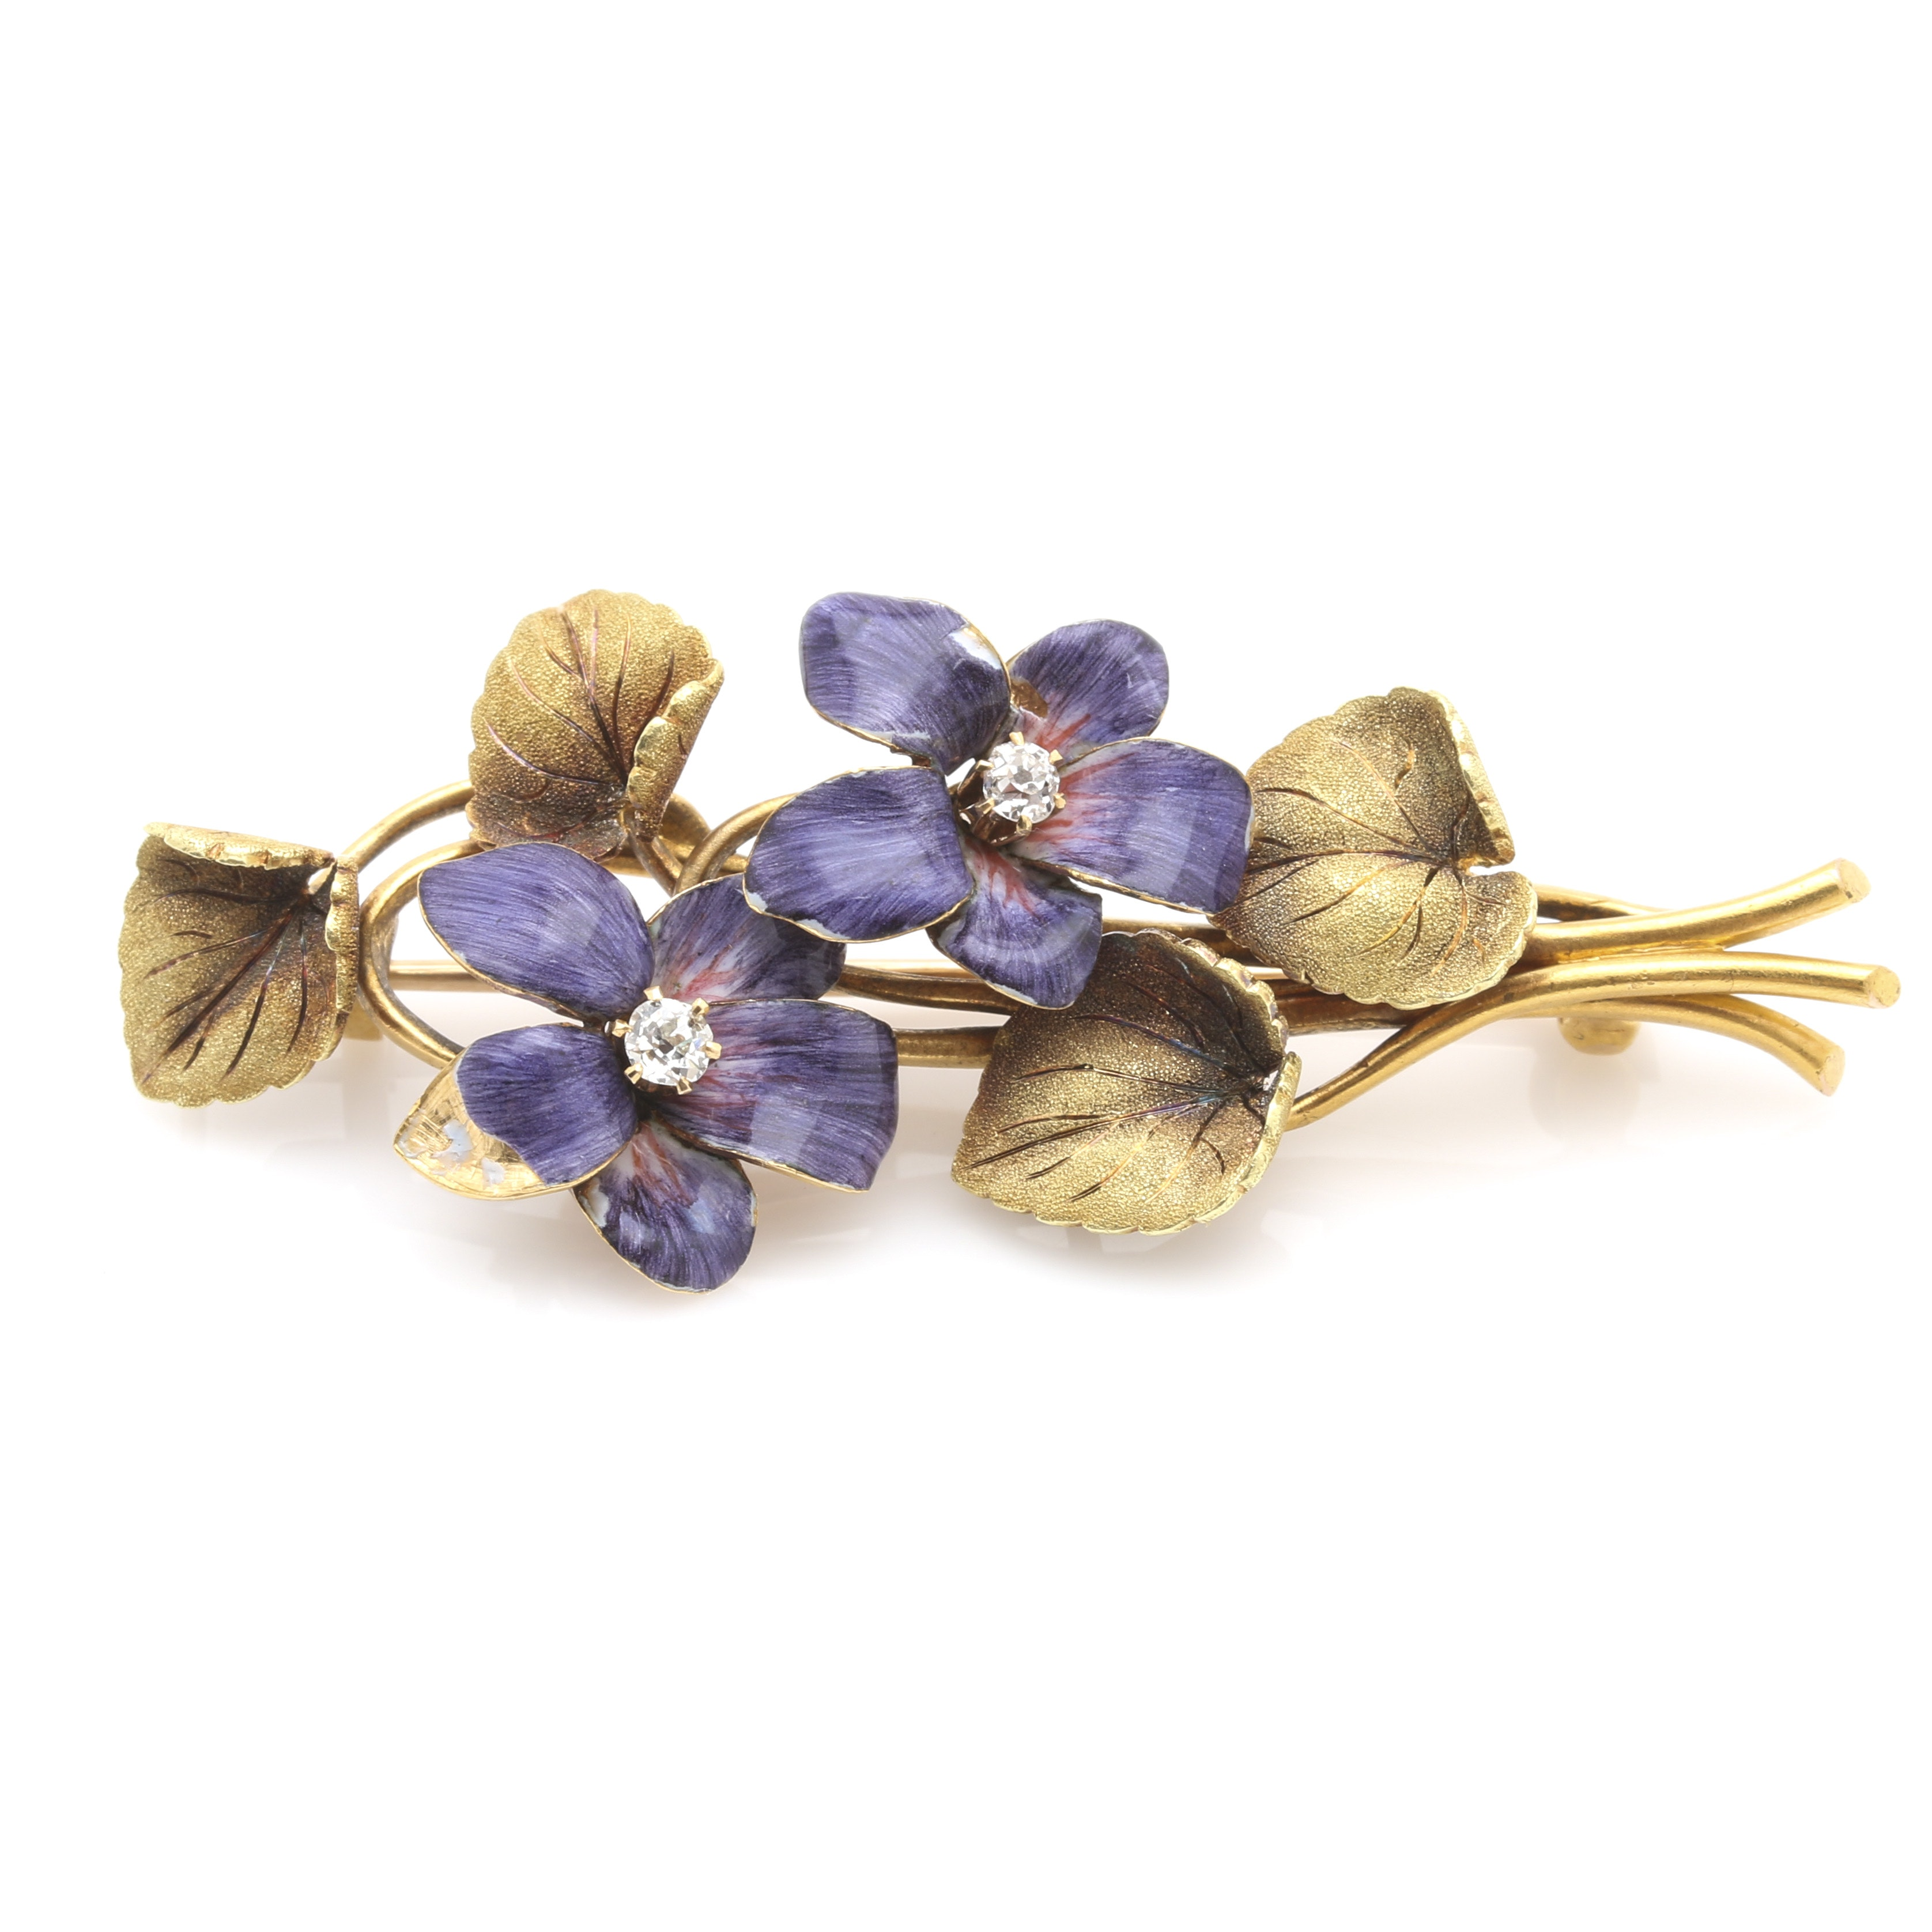 Circa 1930s 18K Yellow Gold Diamond and Enamel Bouquet Brooch